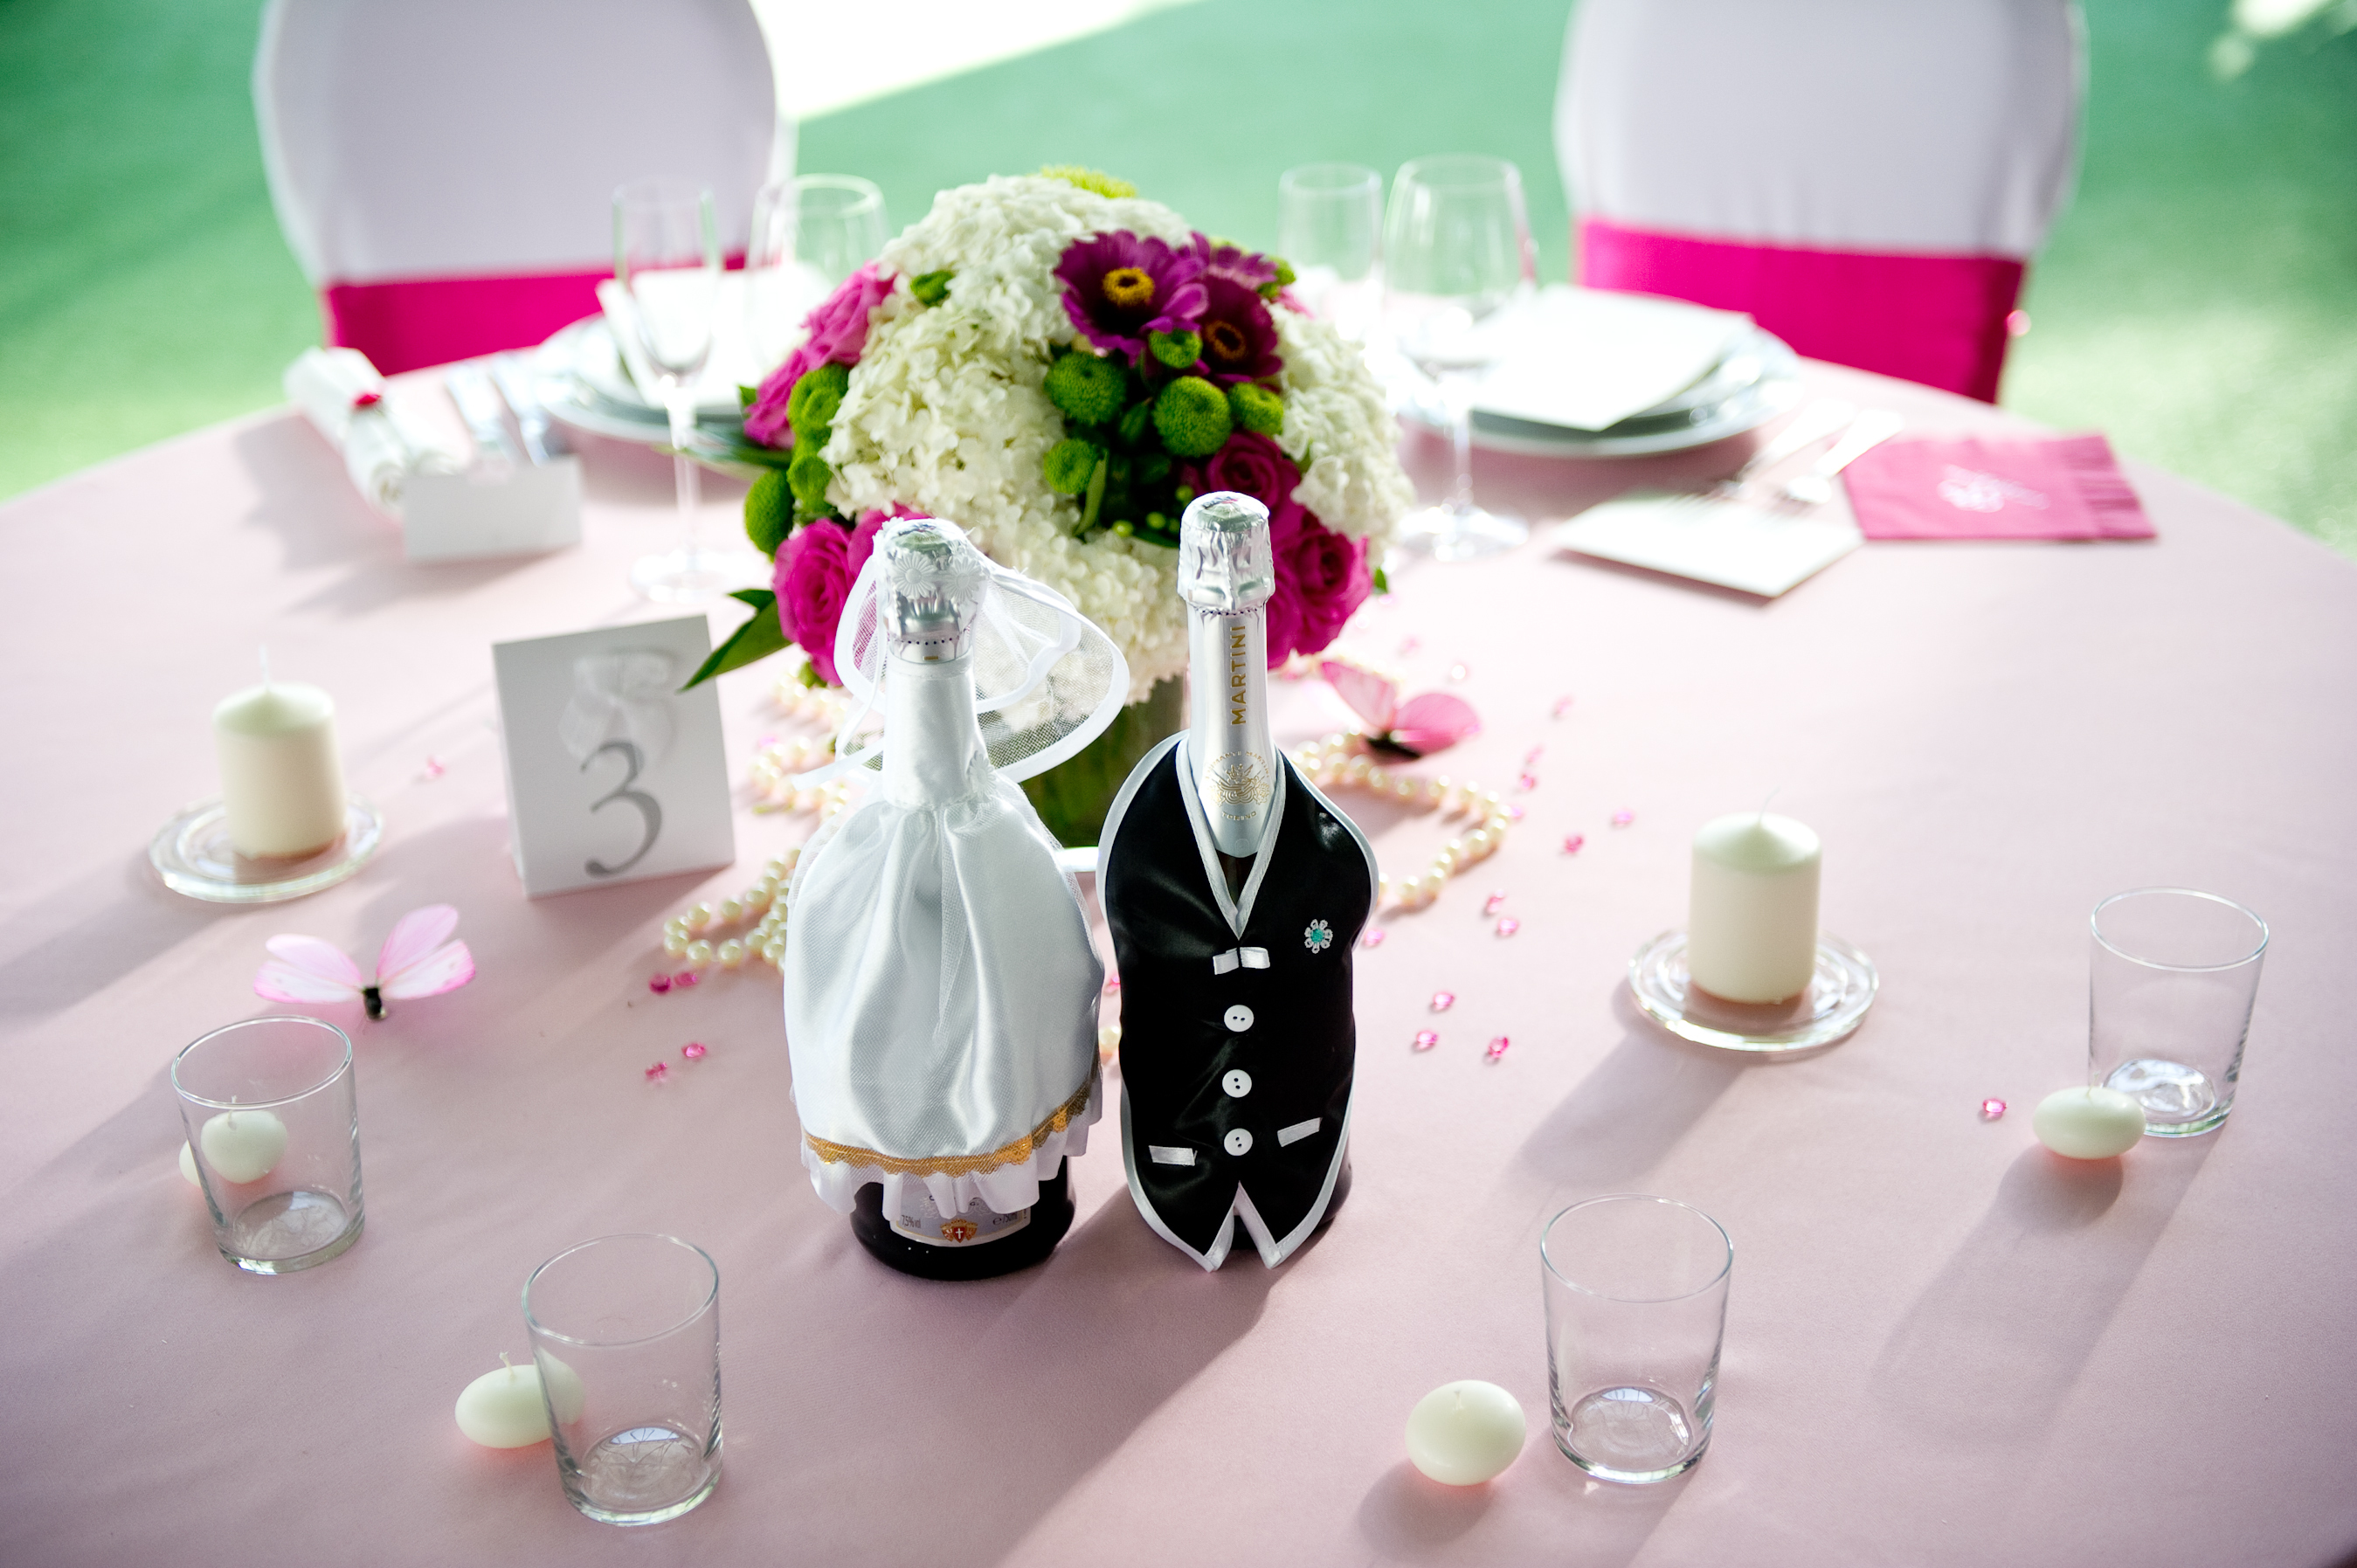 Reception, Flowers & Decor, white, pink, green, black, Bride Bouquets, Centerpieces, Bride, Candles, Flowers, Centerpiece, Groom, Wedding, Table, Crystal, Dressed, Card, Inspiration board, Butterflies, Decoration, Stationary, Bottles, Beads